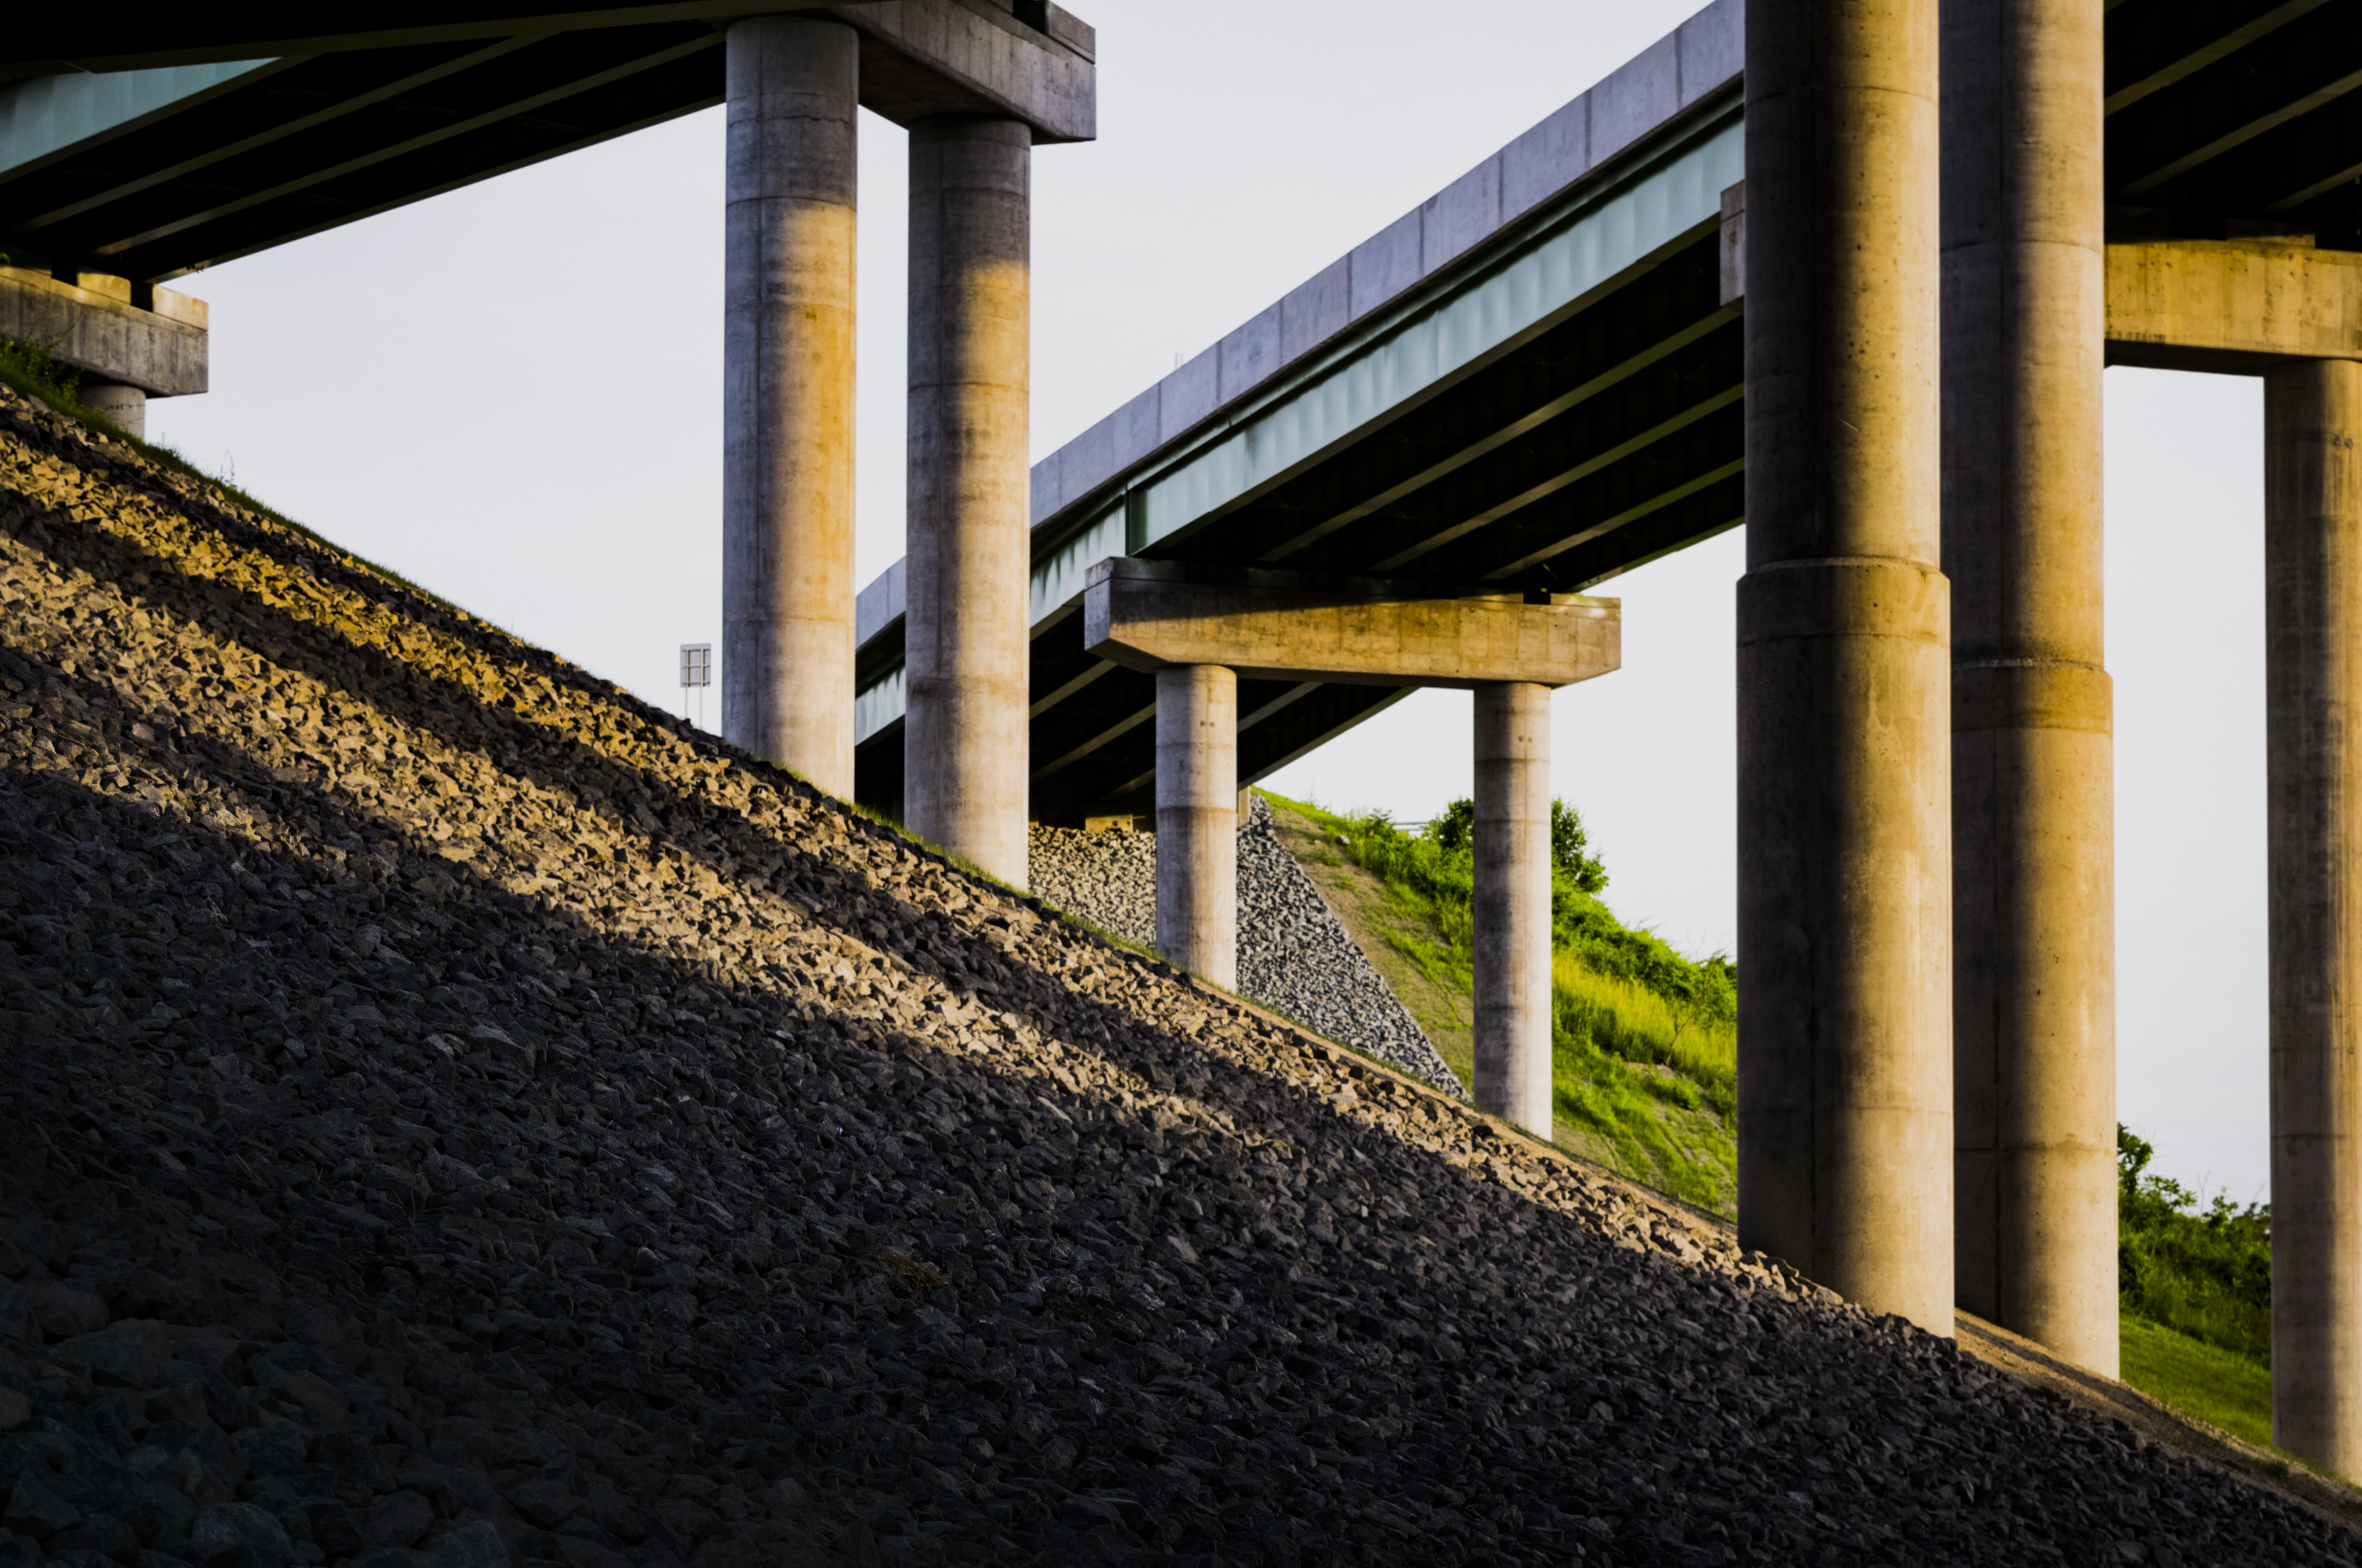 The support columns of multiple overpasses in Albany as seen from below.